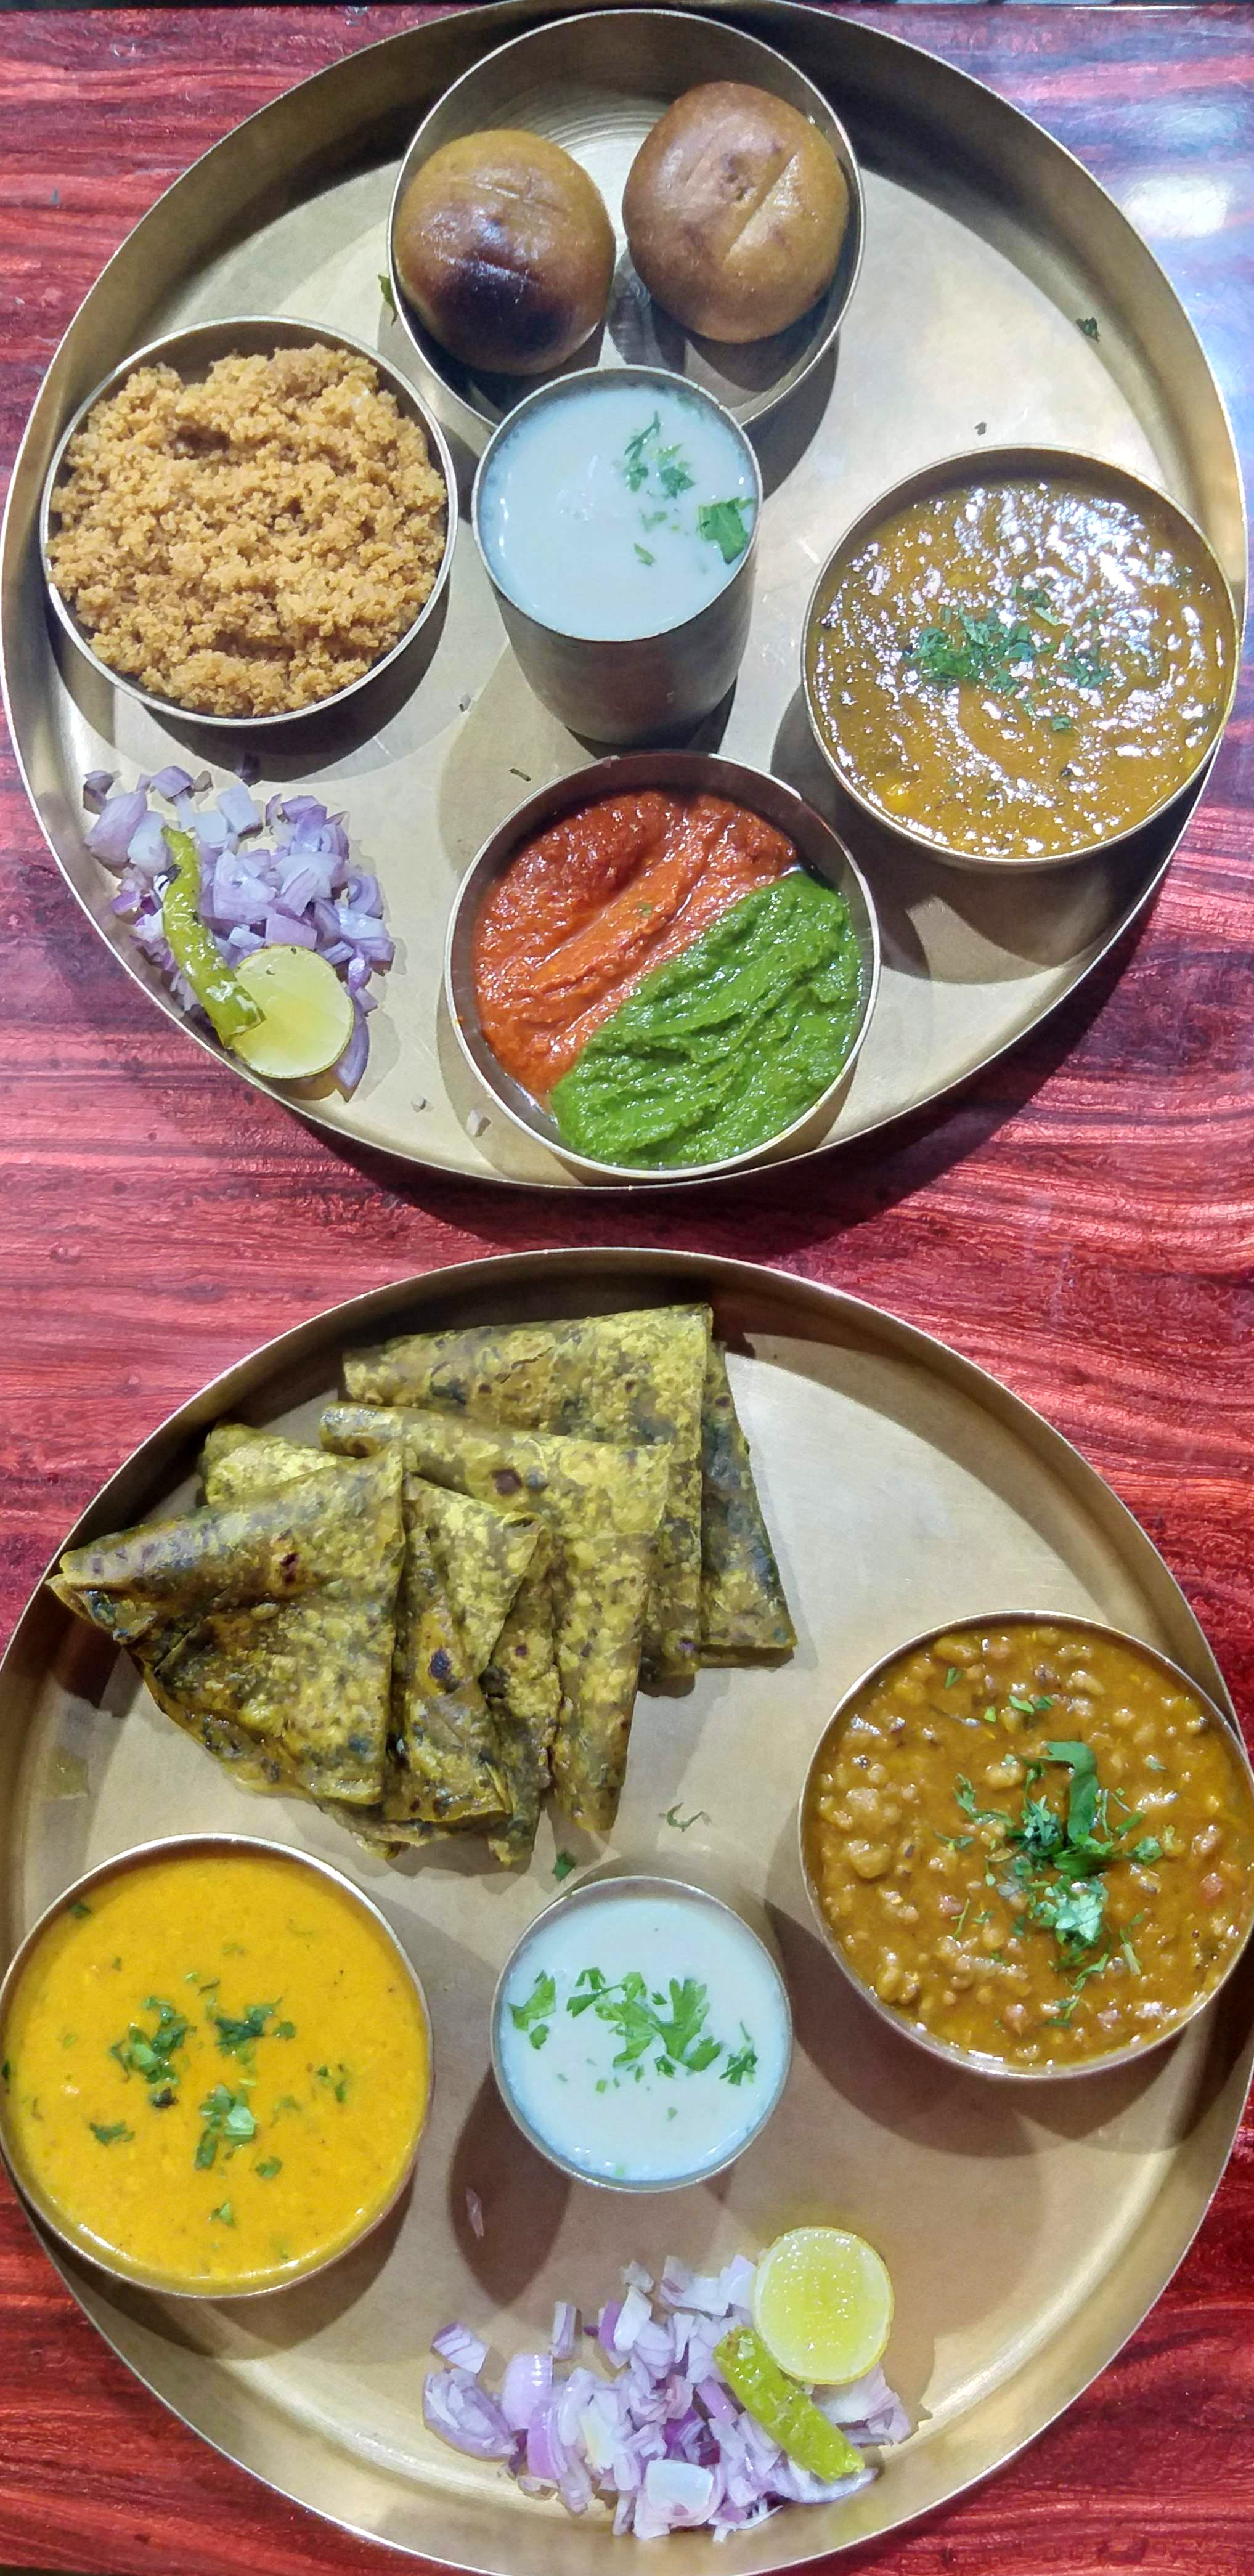 Looking for some delicious Rajasthani meal??? You just hit the right spot